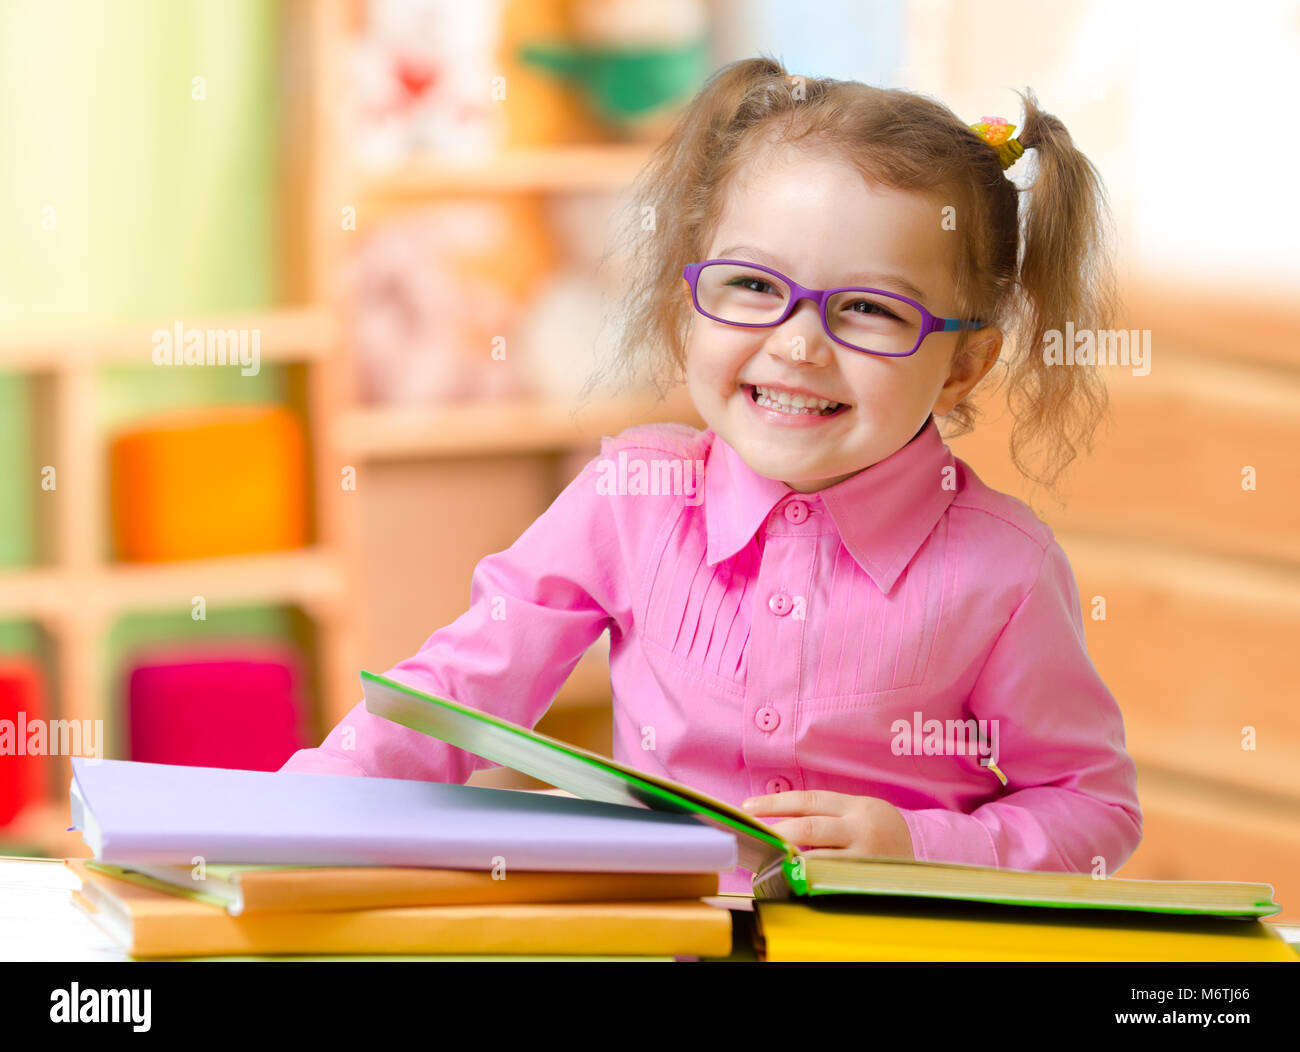 Kid in eyeglasses or spectacles reading books in her room - Stock Image